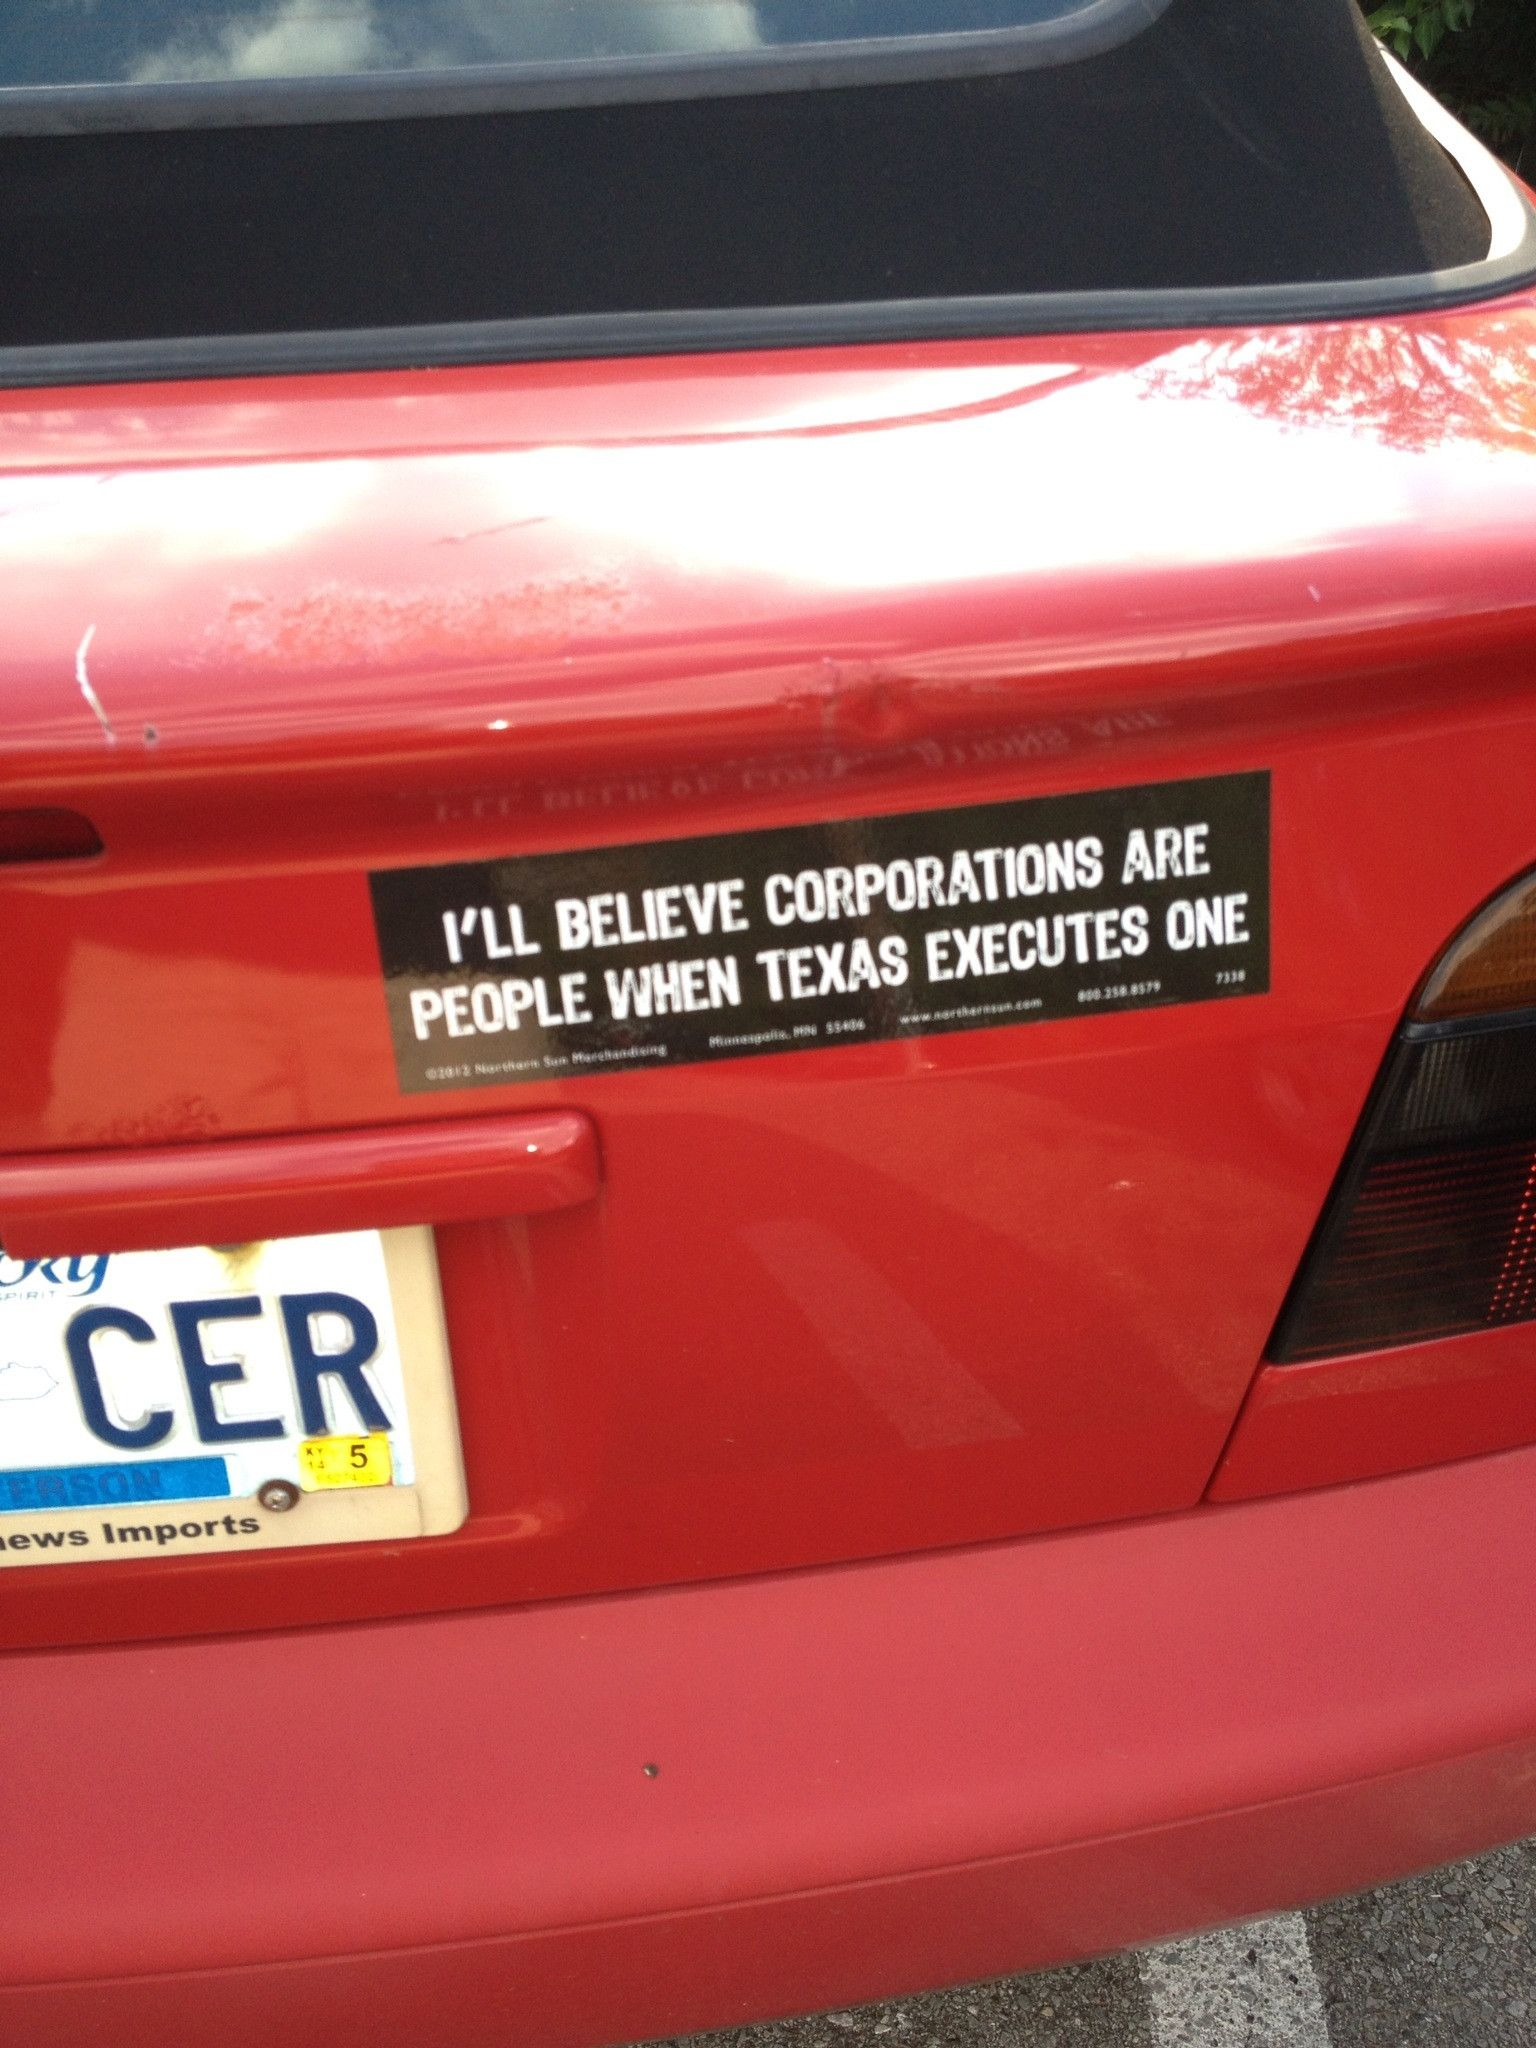 Ill believe corporations are people when texas executes one funny bumper sticker quotes politics